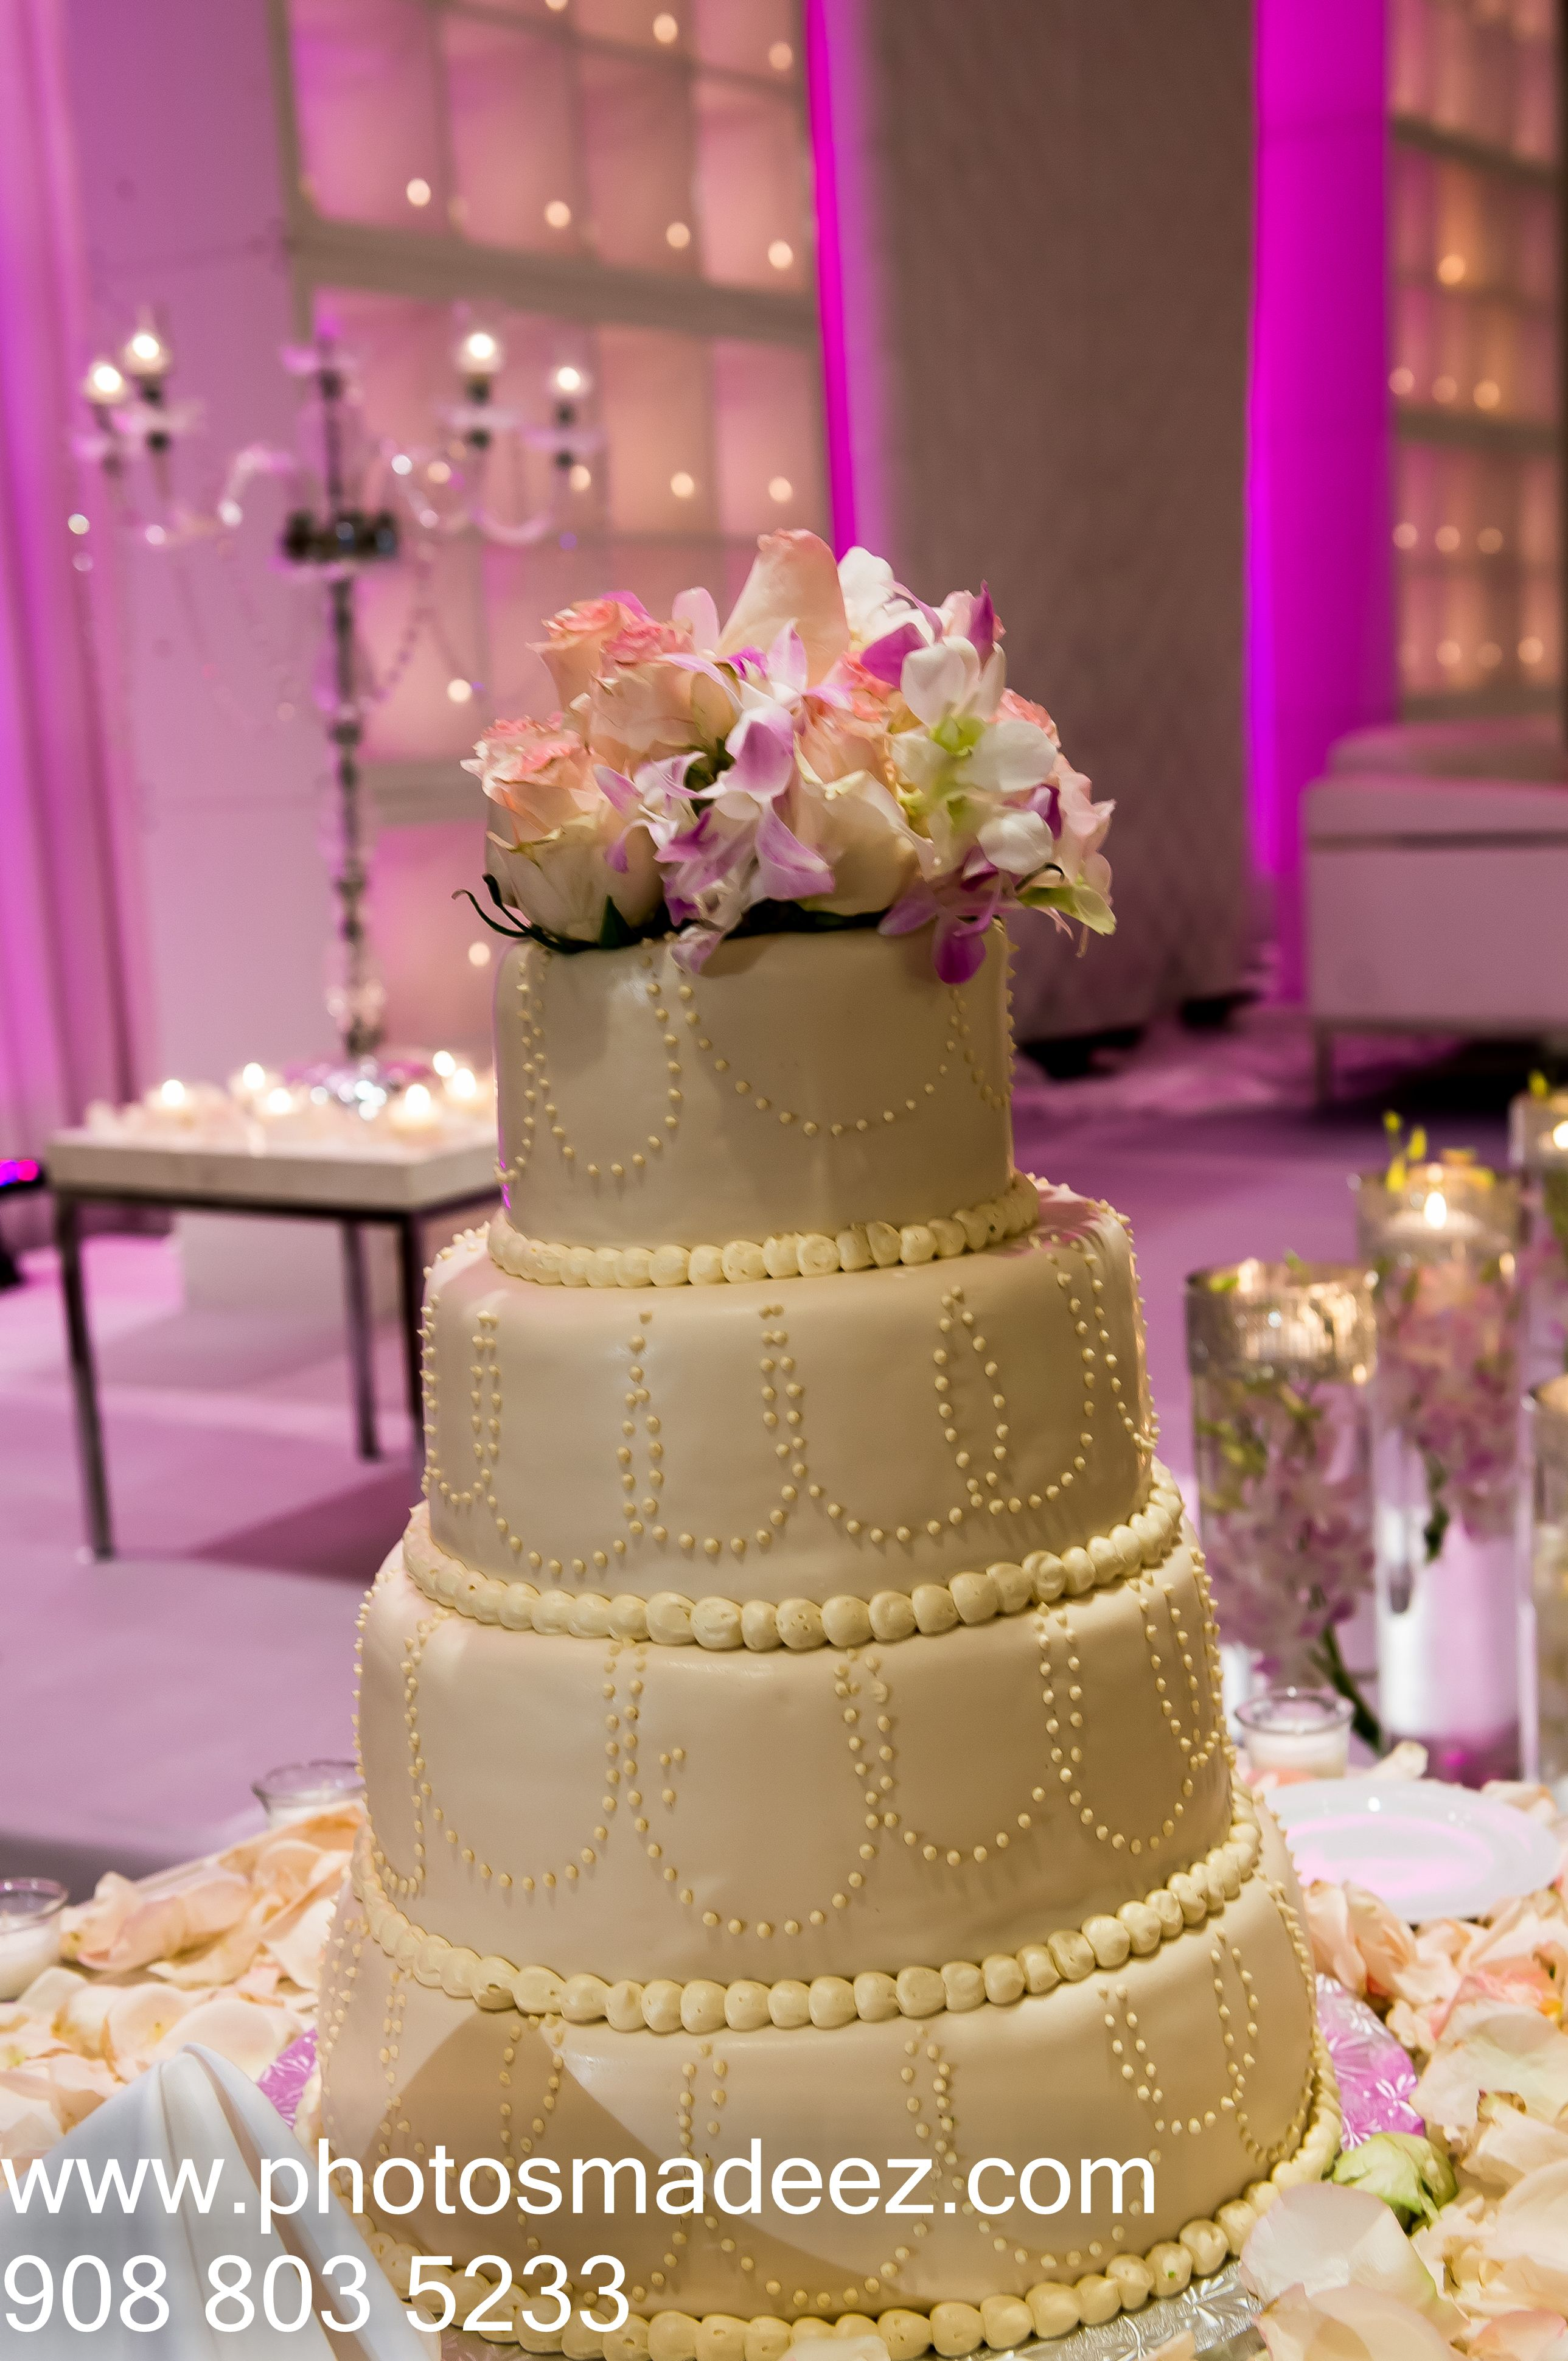 Wedding cake for a mixed wedding at vip country club in long island ny